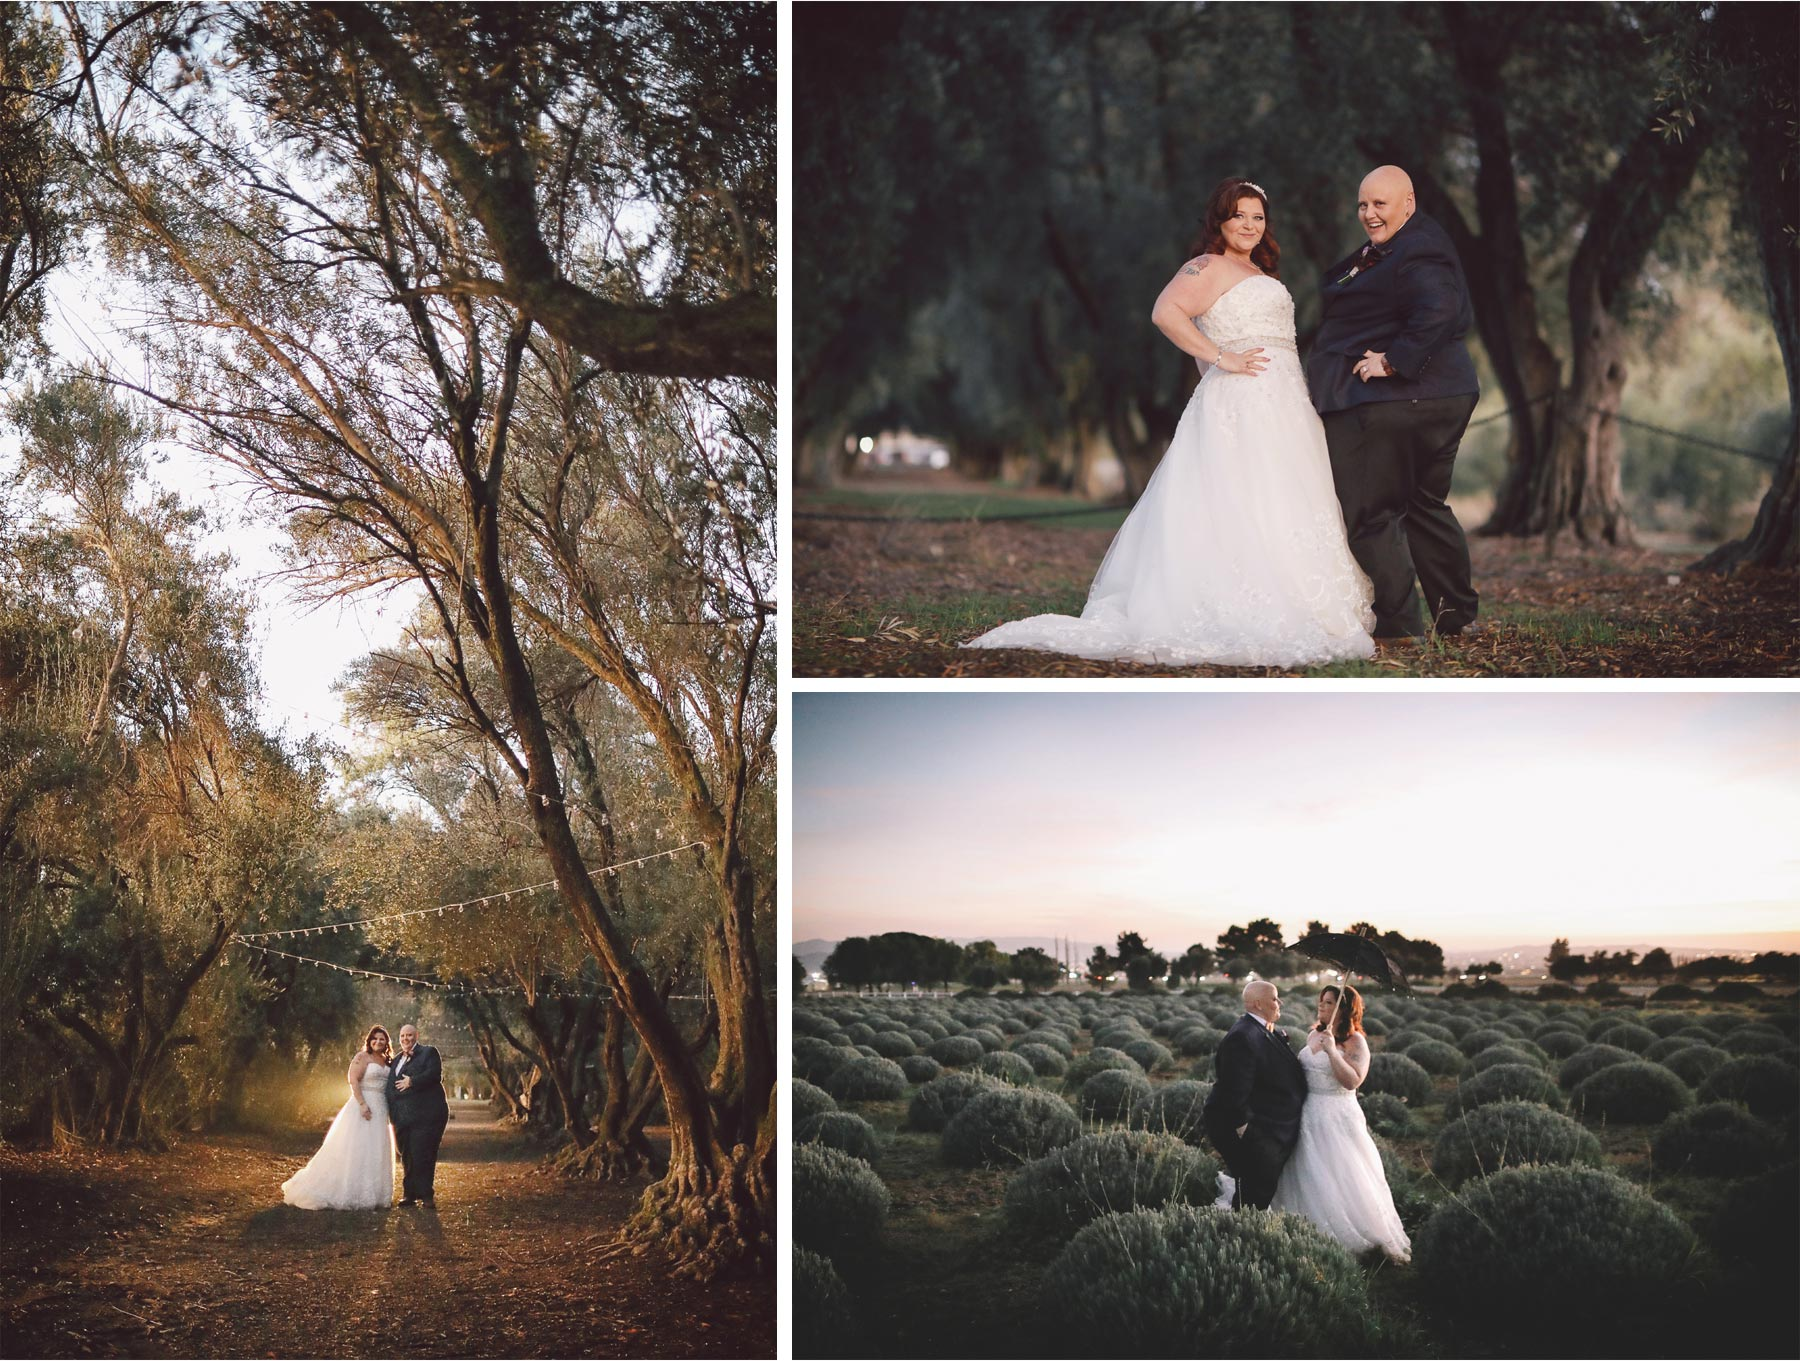 21-Los-Angeles-California-Wedding-Photographer-by-Vick-Photography-Highland-Springs-Ranch-LGBT-Night-Photography-Trees-Lavender-Field-Rebecca-and-Terri.jpg